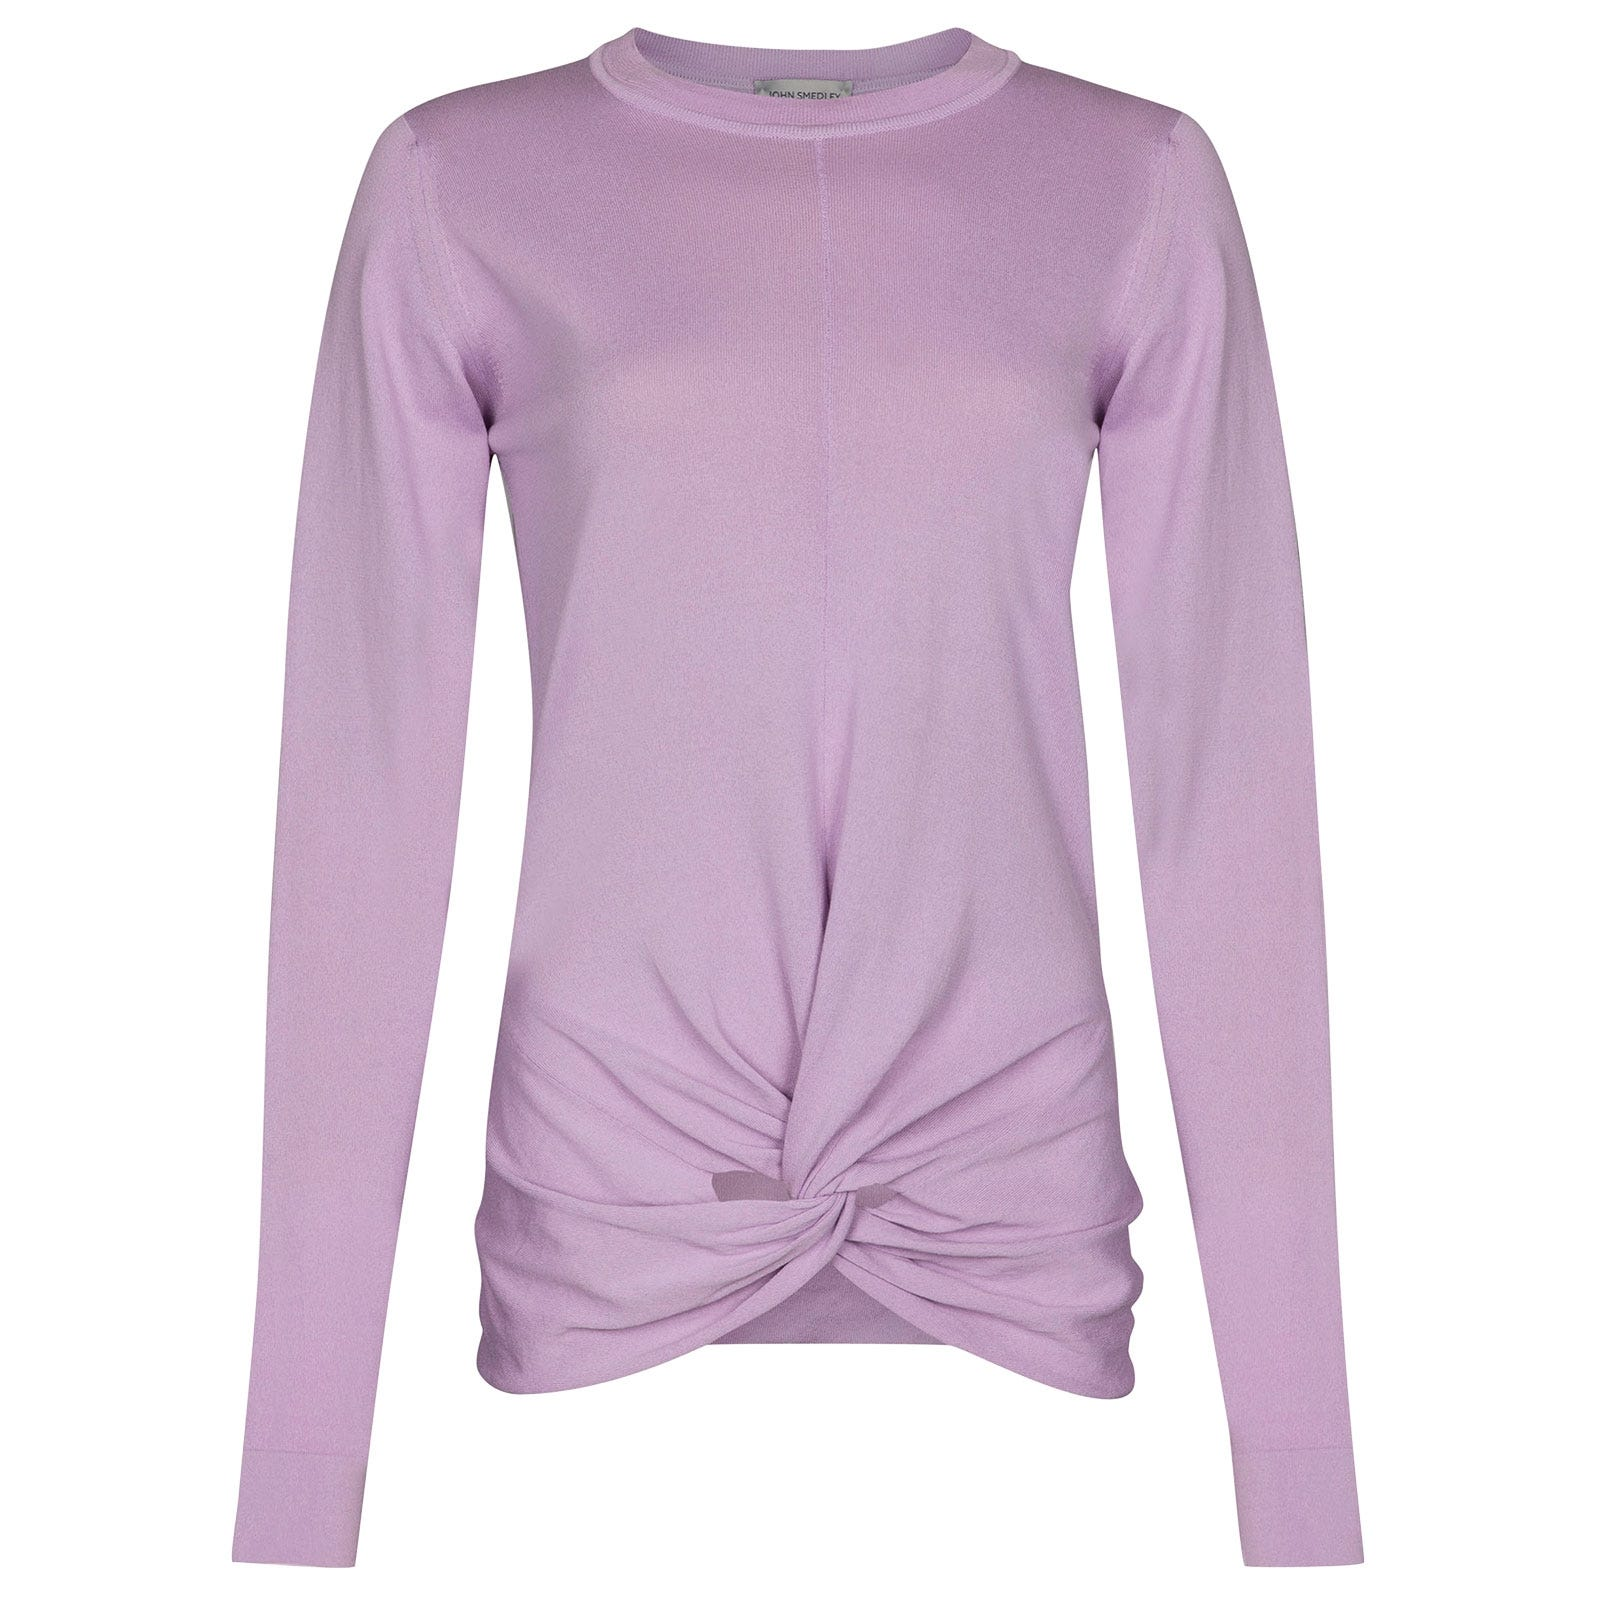 John Smedley Emley Merino Wool Sweater in Pintuck Lilac-S